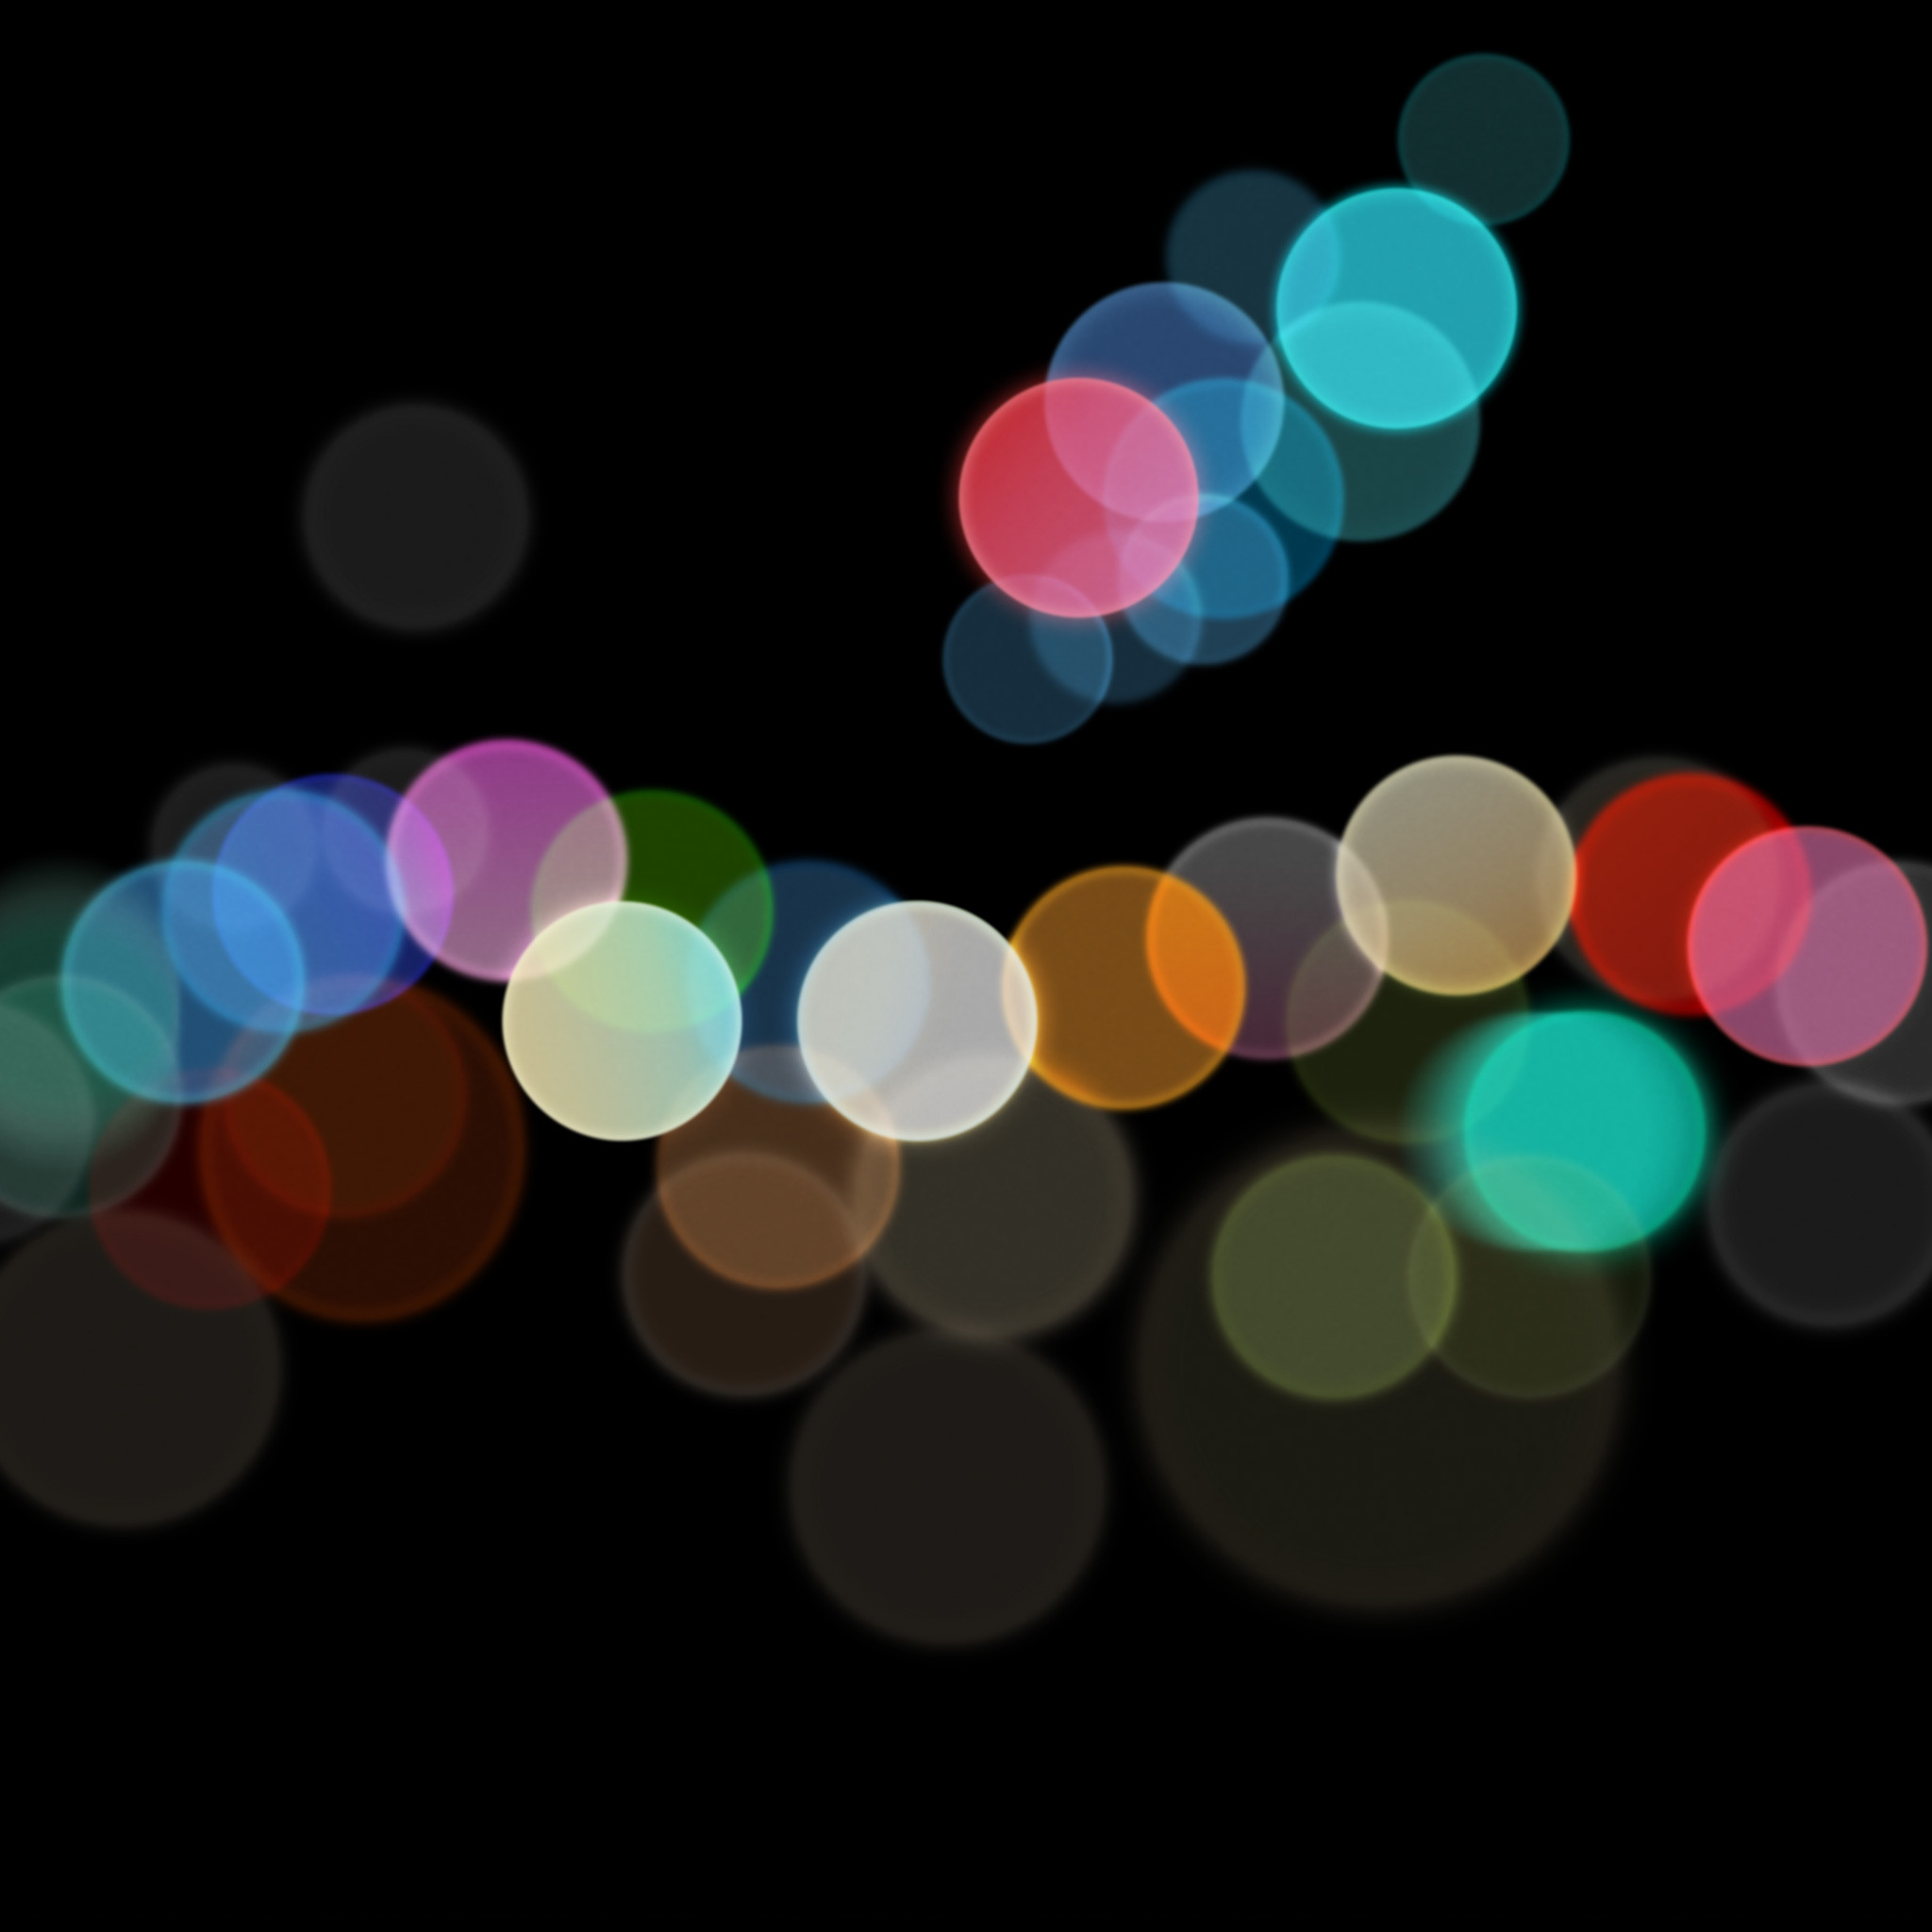 Res: 2048x2048, September 7 Apple event wallpapers